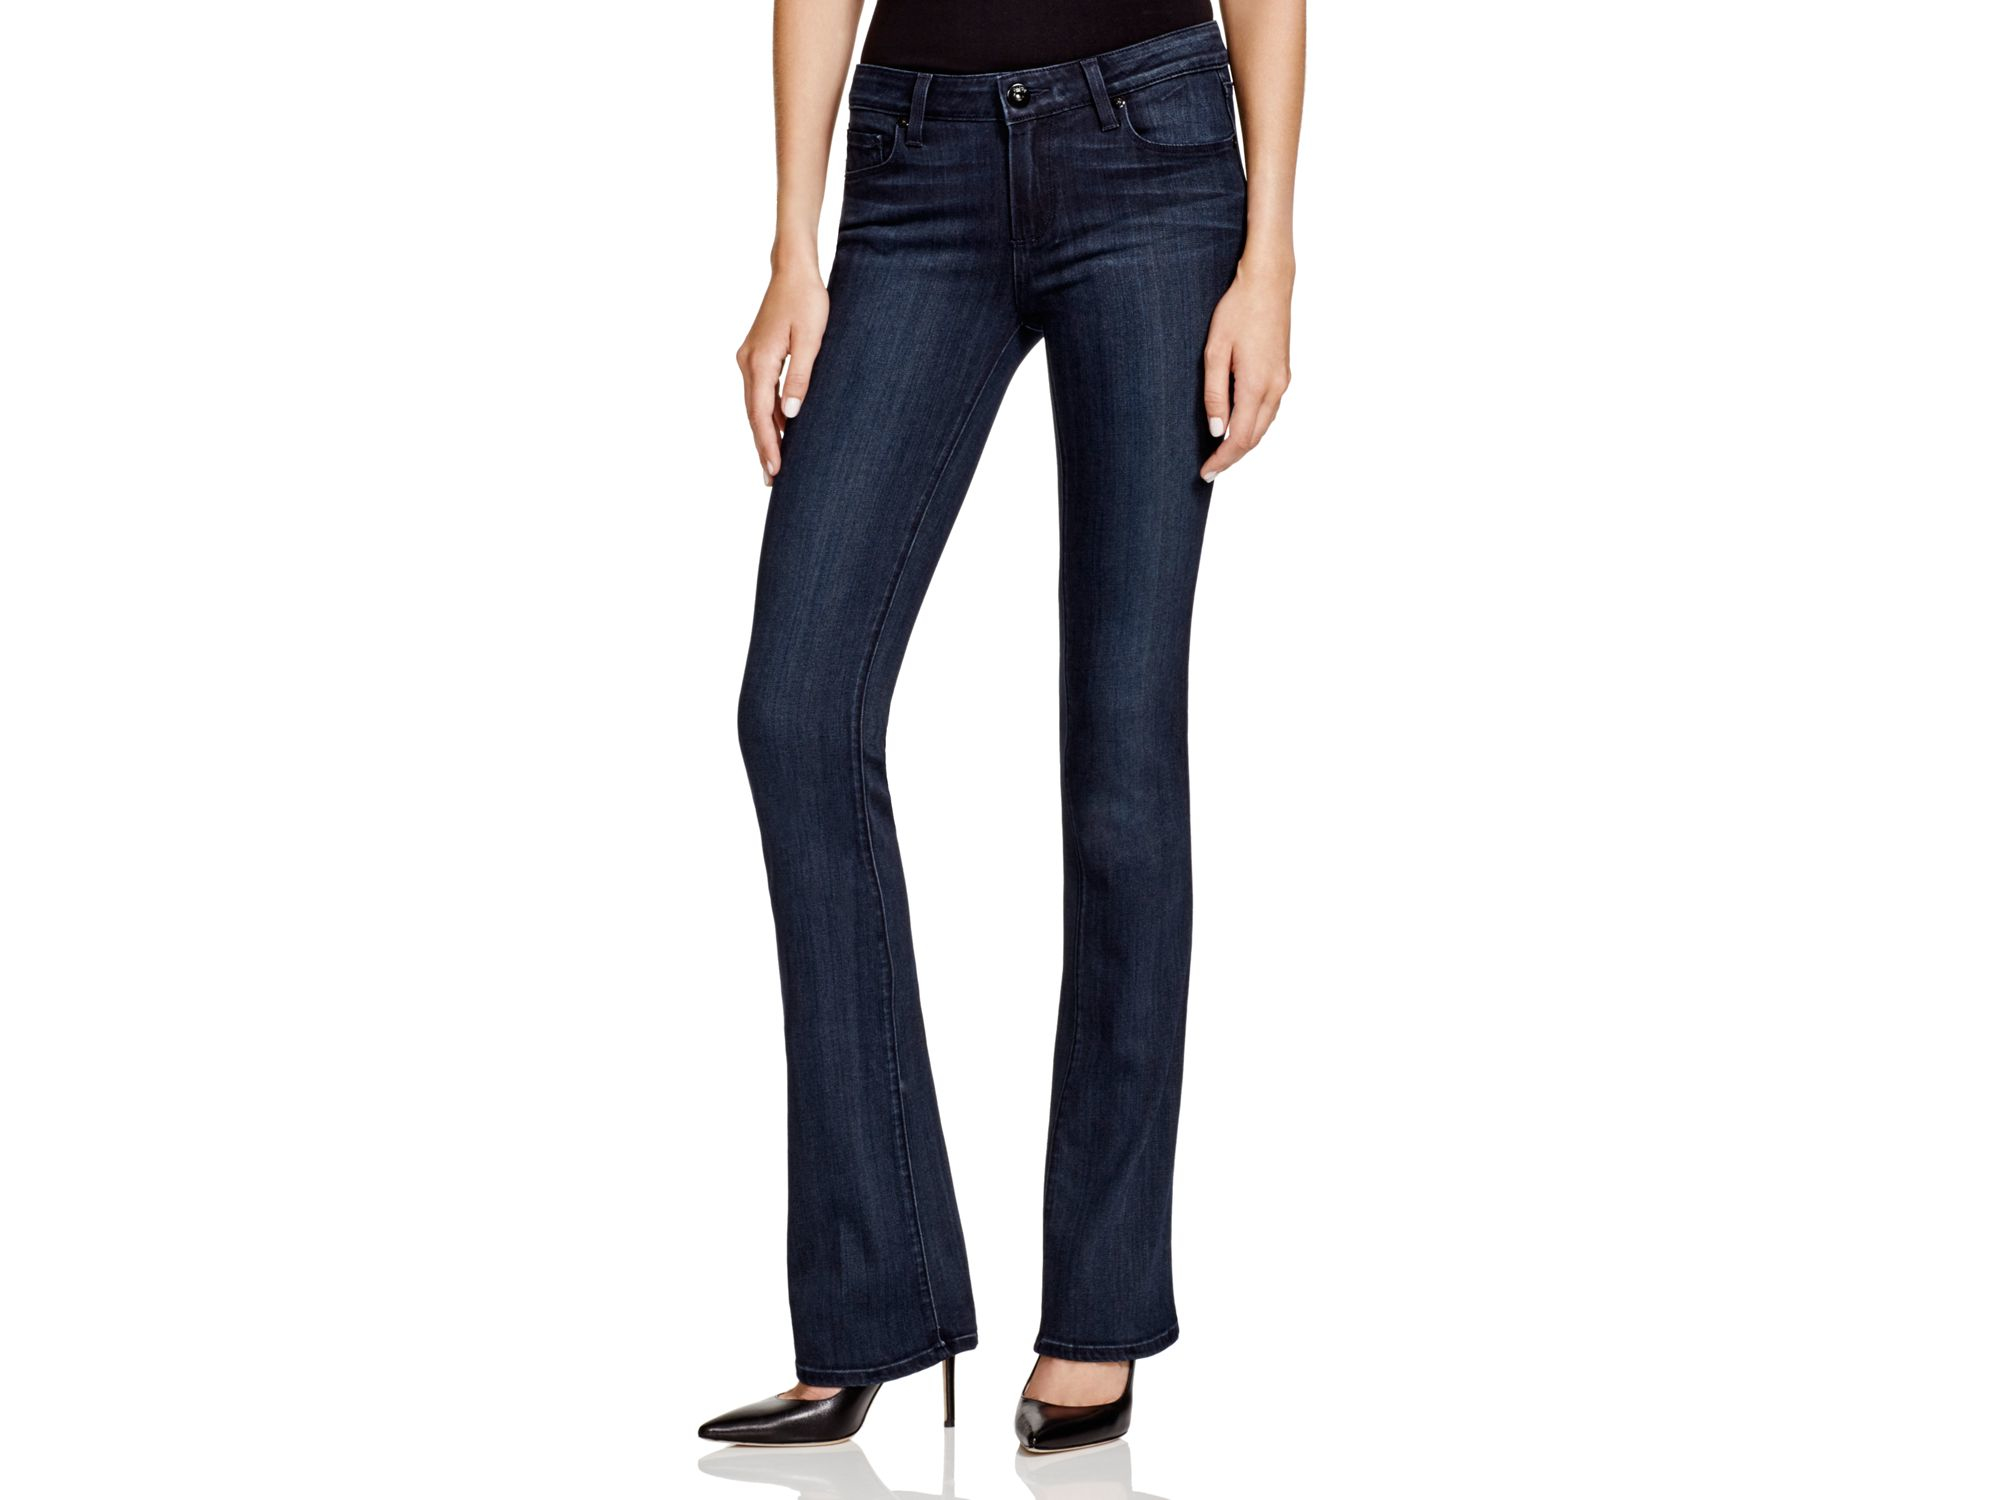 Image result for dark wash bootcut jeans